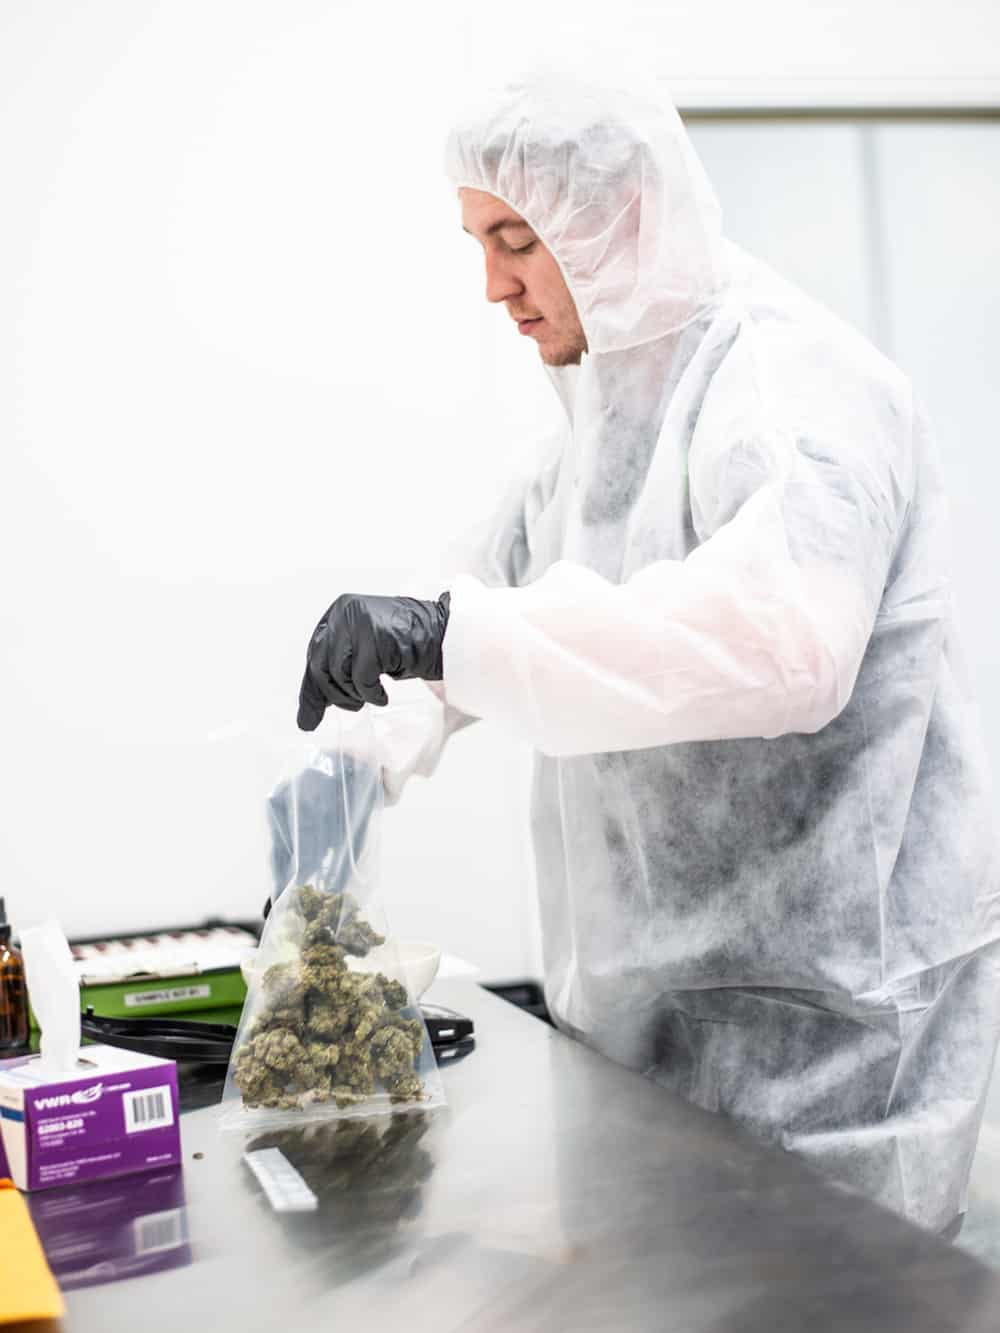 Welcome to the Leading Lab in Cannabis